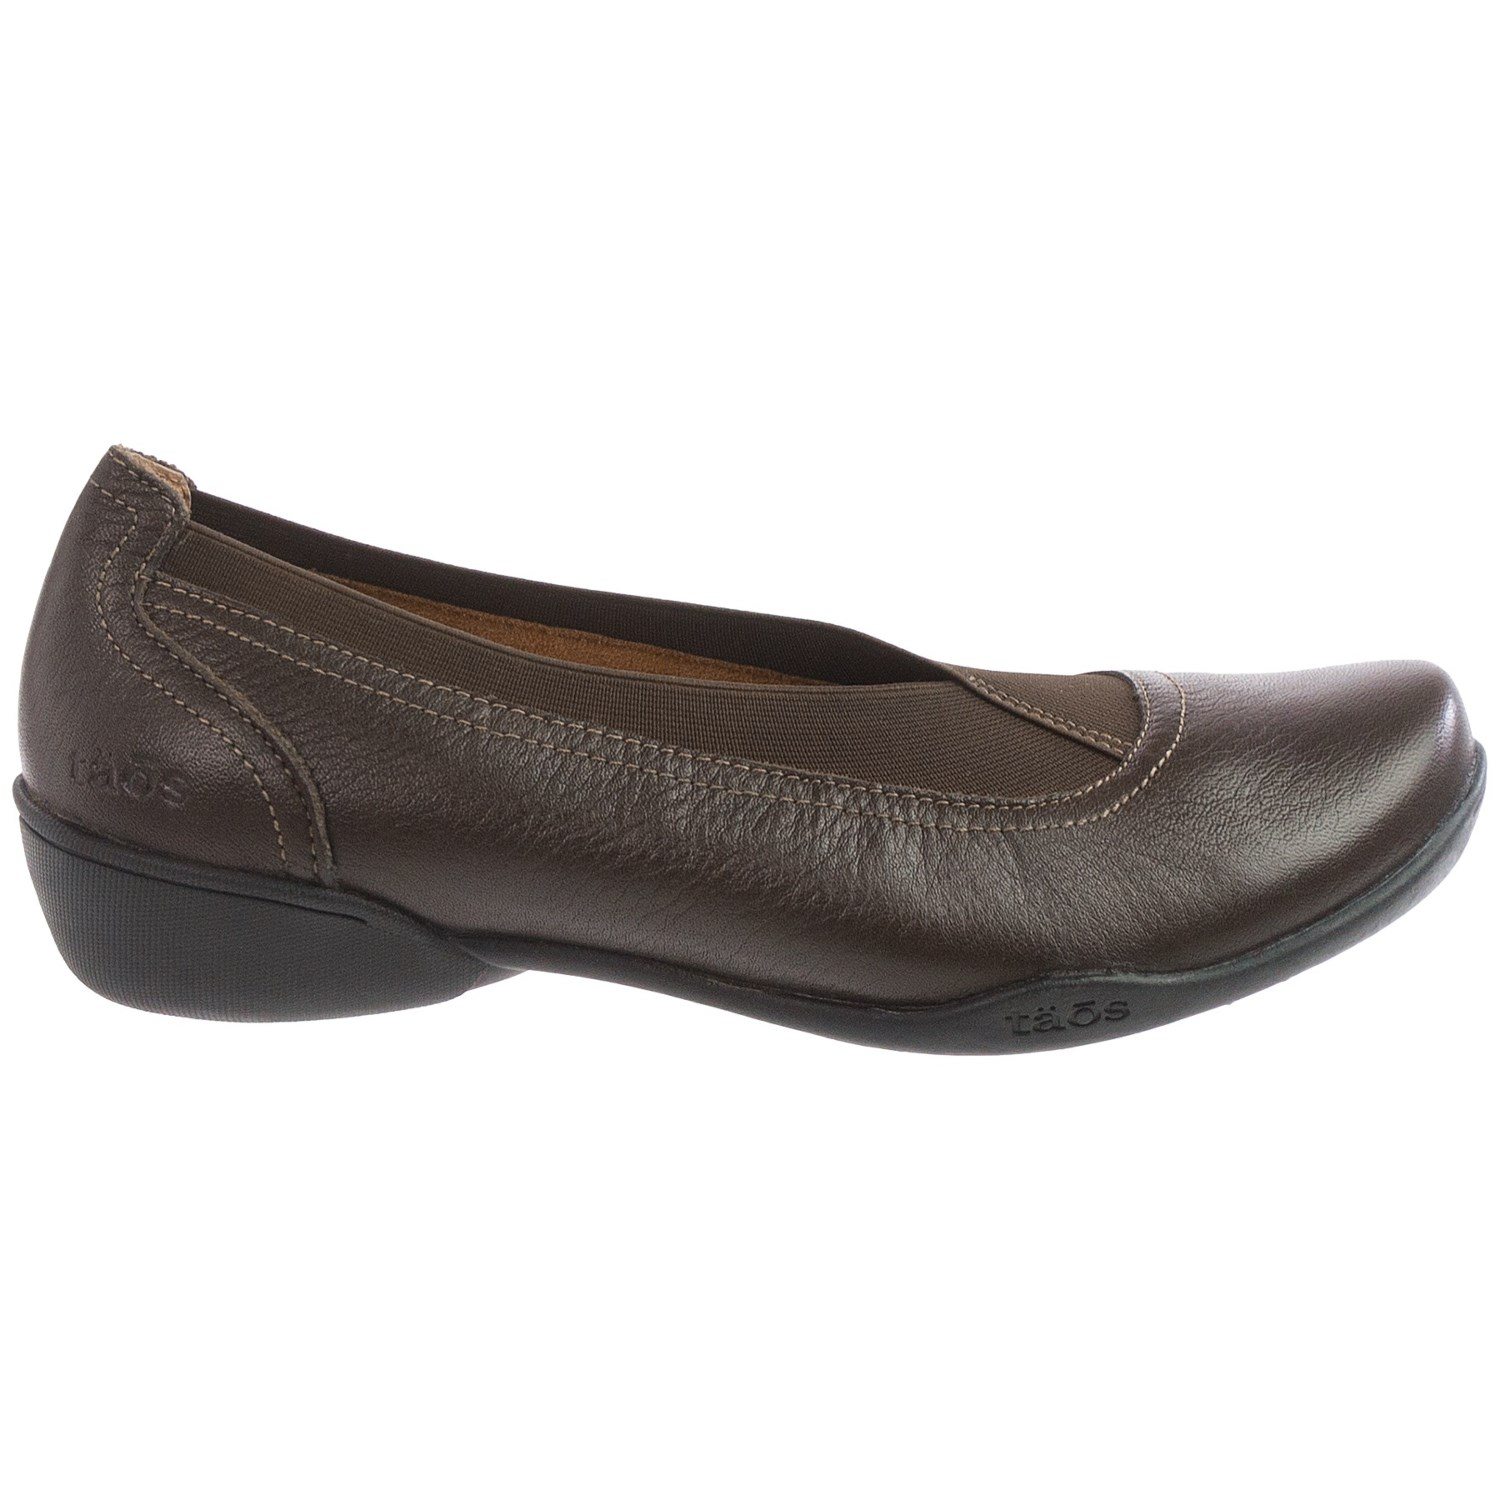 Taos Shoes Online